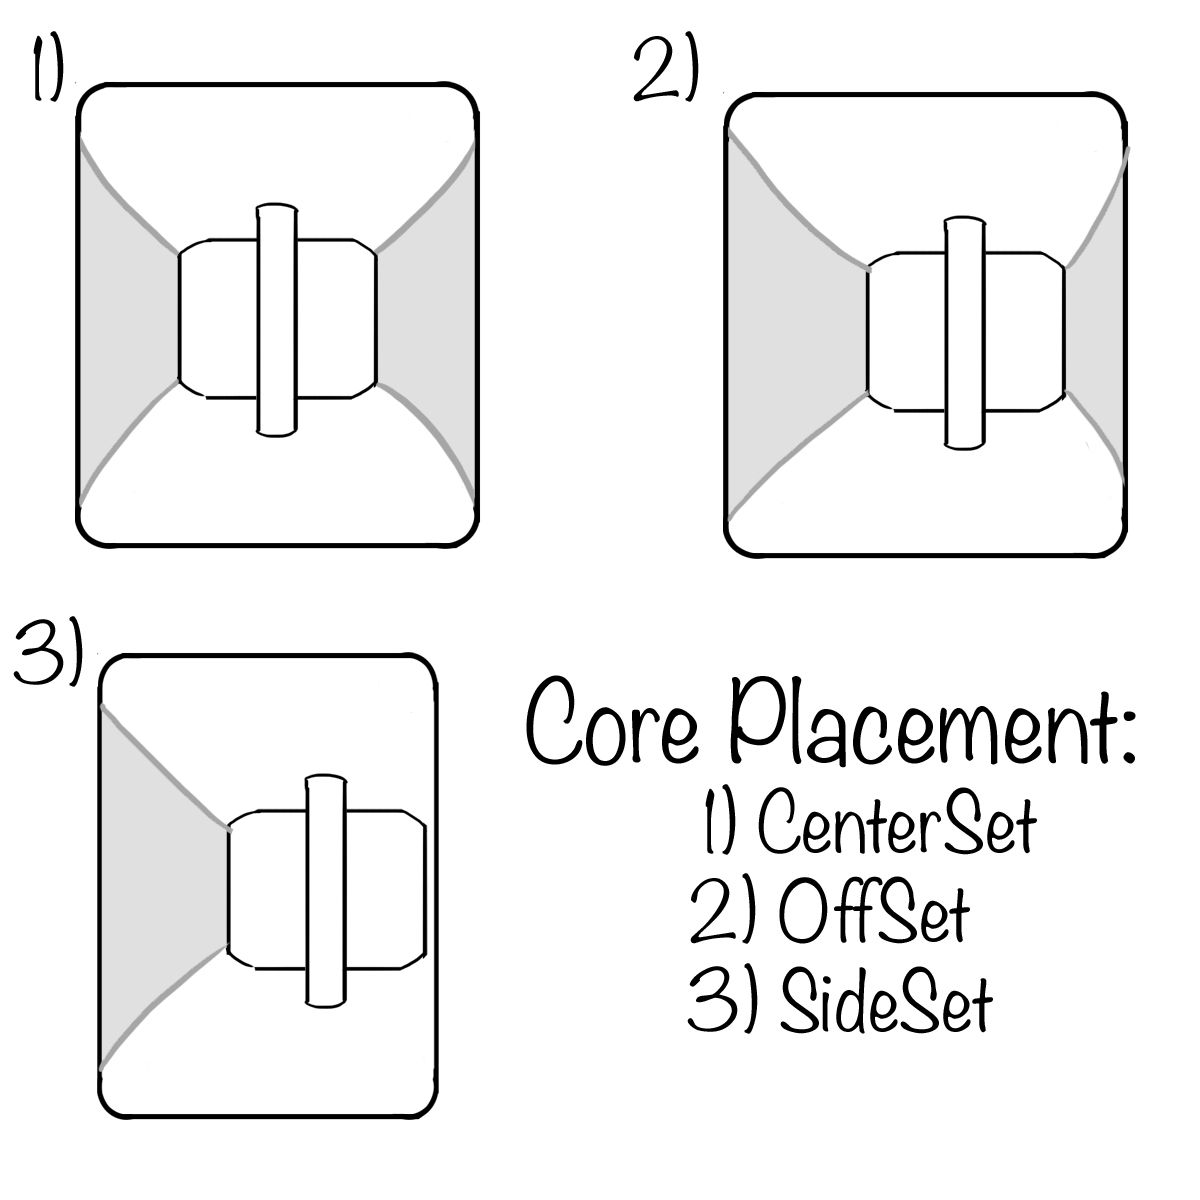 hight resolution of diagram of longboard wheel core placement centerset side set and offset